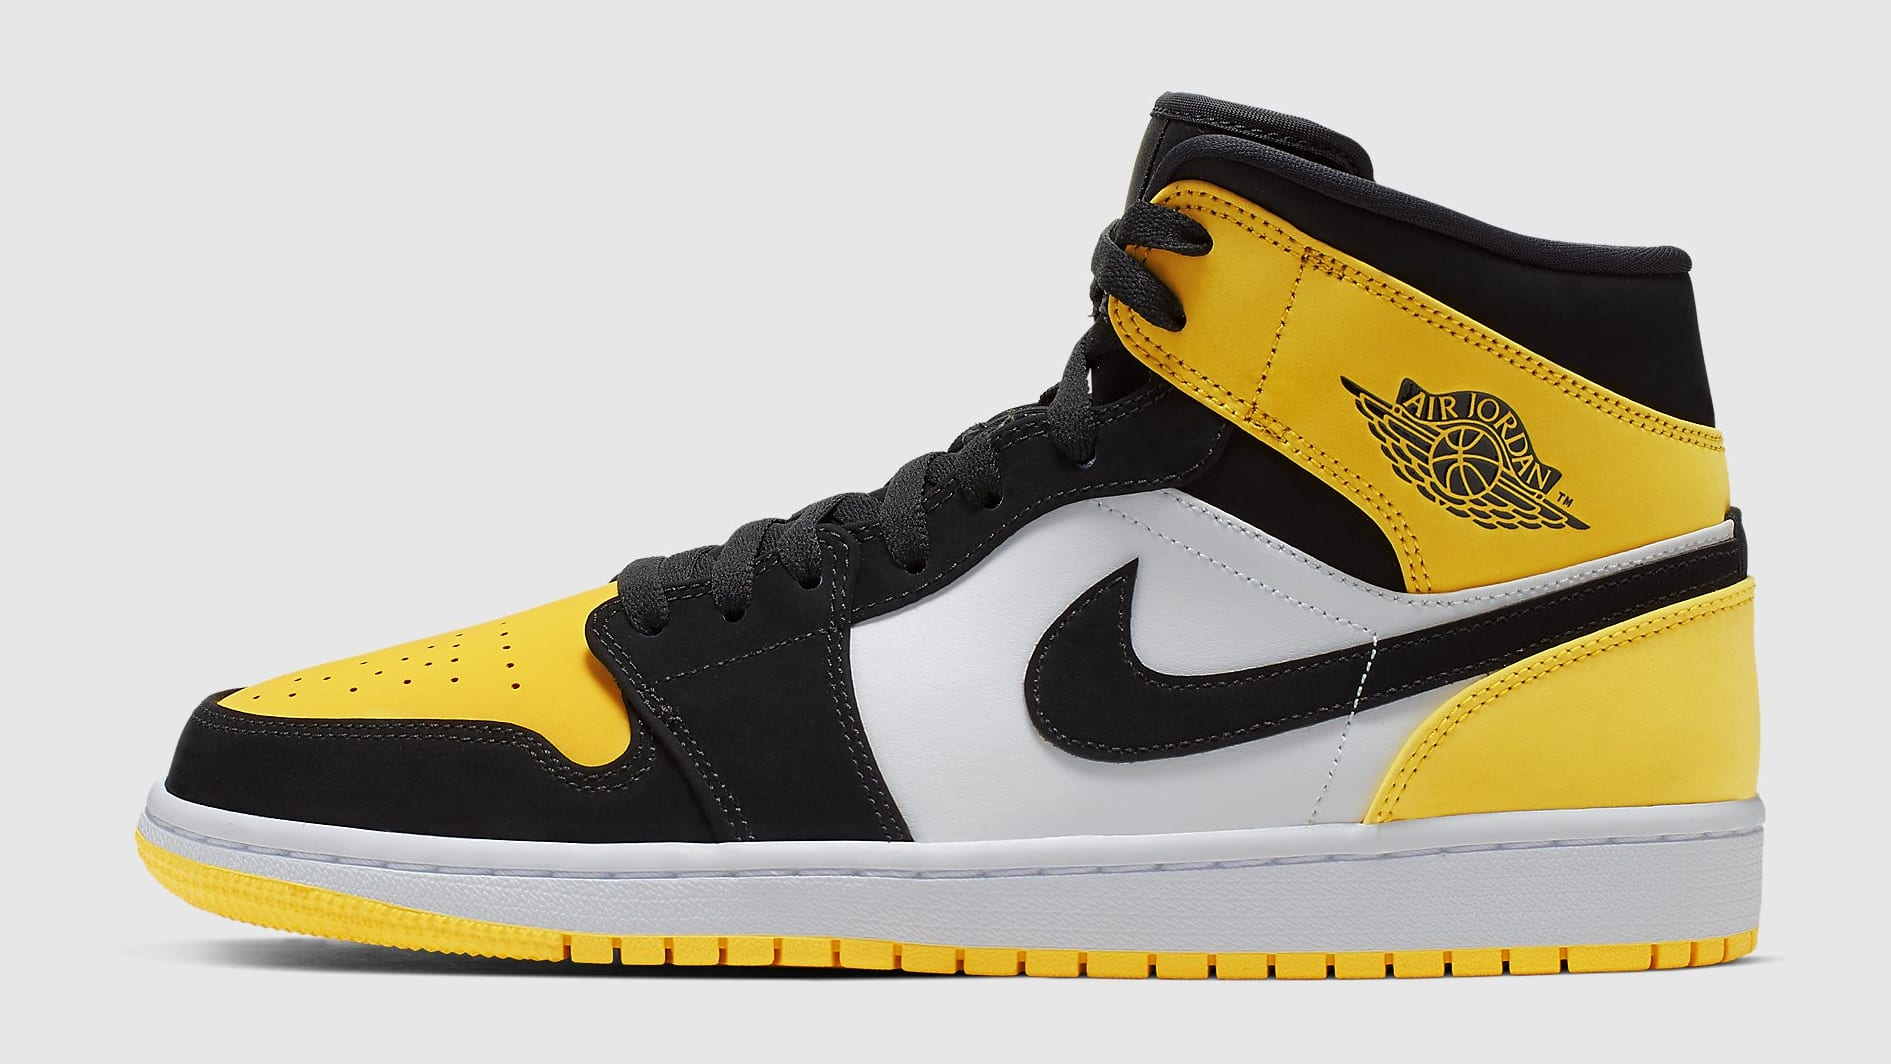 online store 898e5 6afed Air Jordan 1 Mid Yellow Toe Release Date 852542-071 | Sole ...